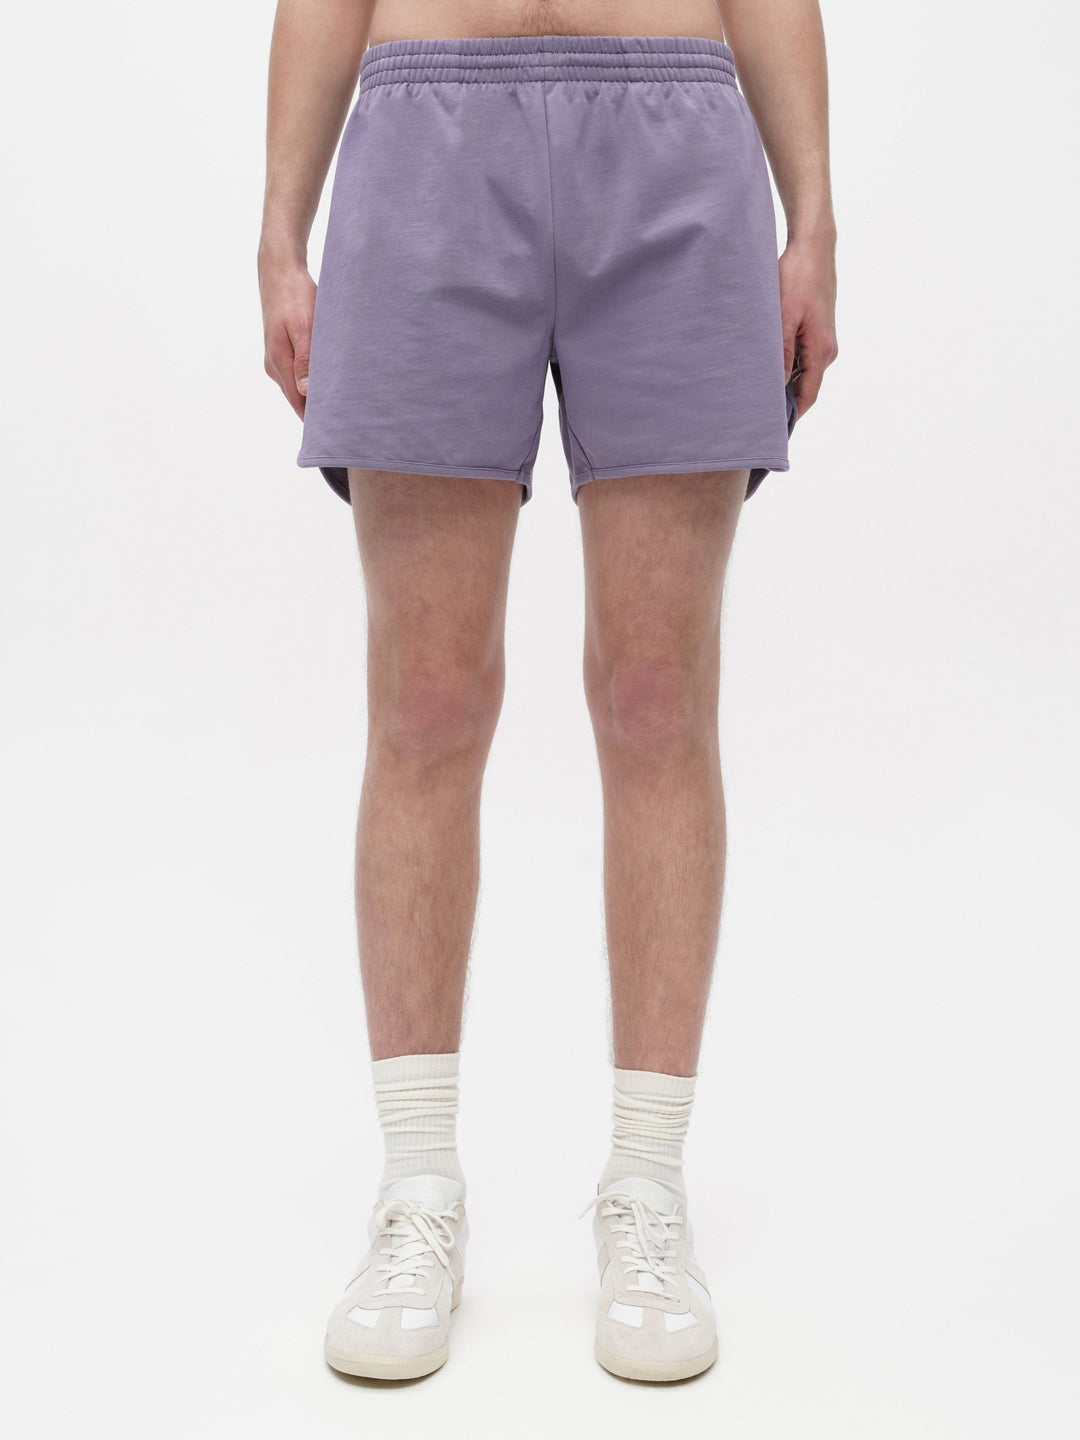 Unisex Loose Running Shorts Purple